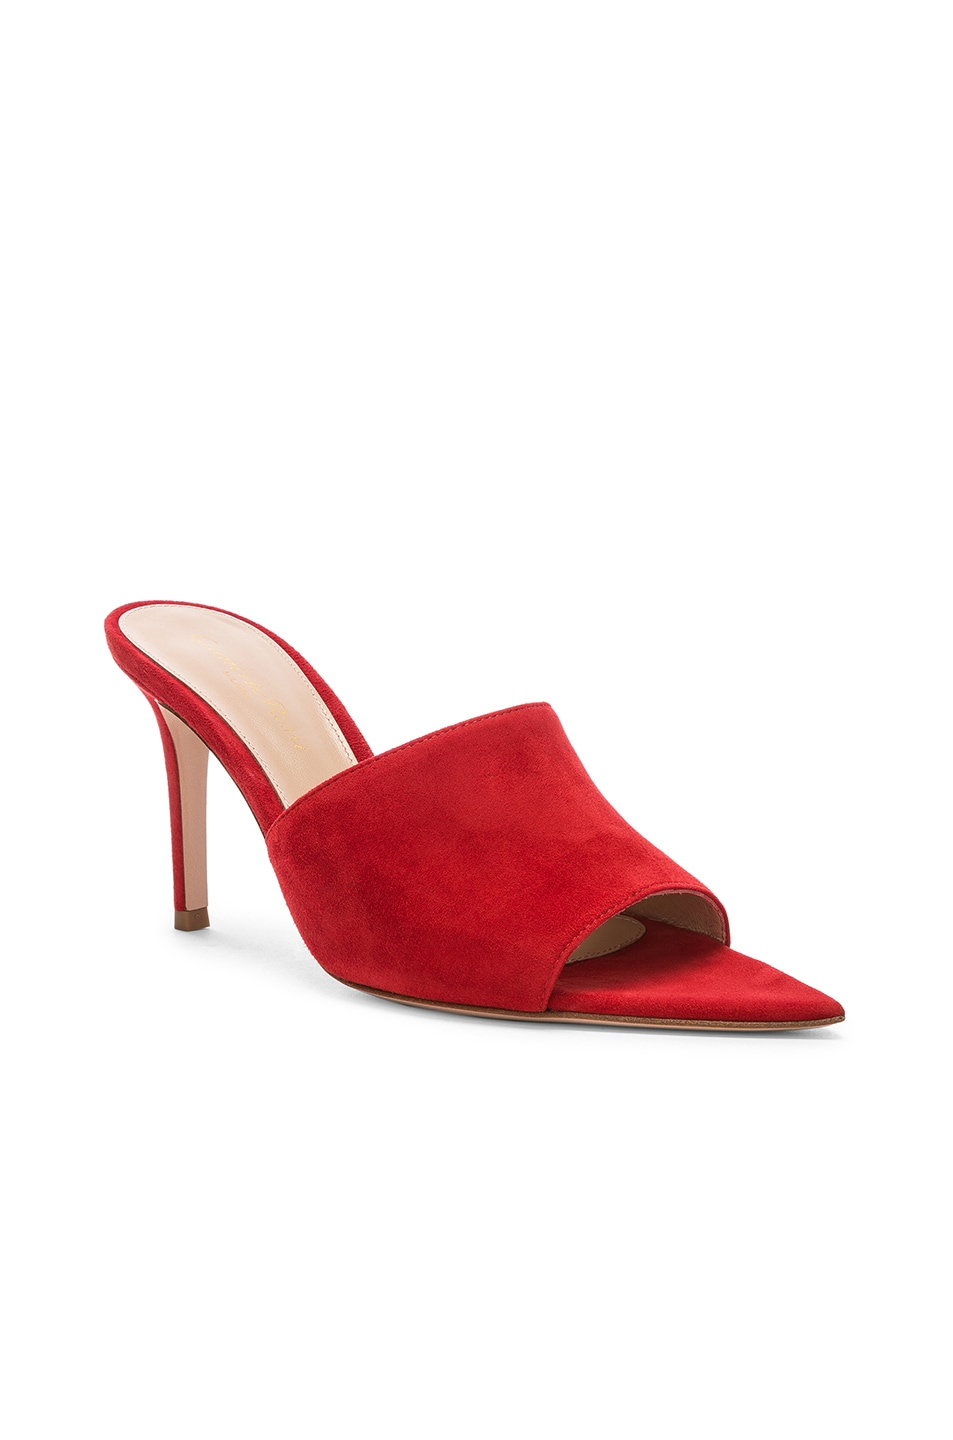 Image 2 of Gianvito Rossi Alise Mules in Tabasco Red